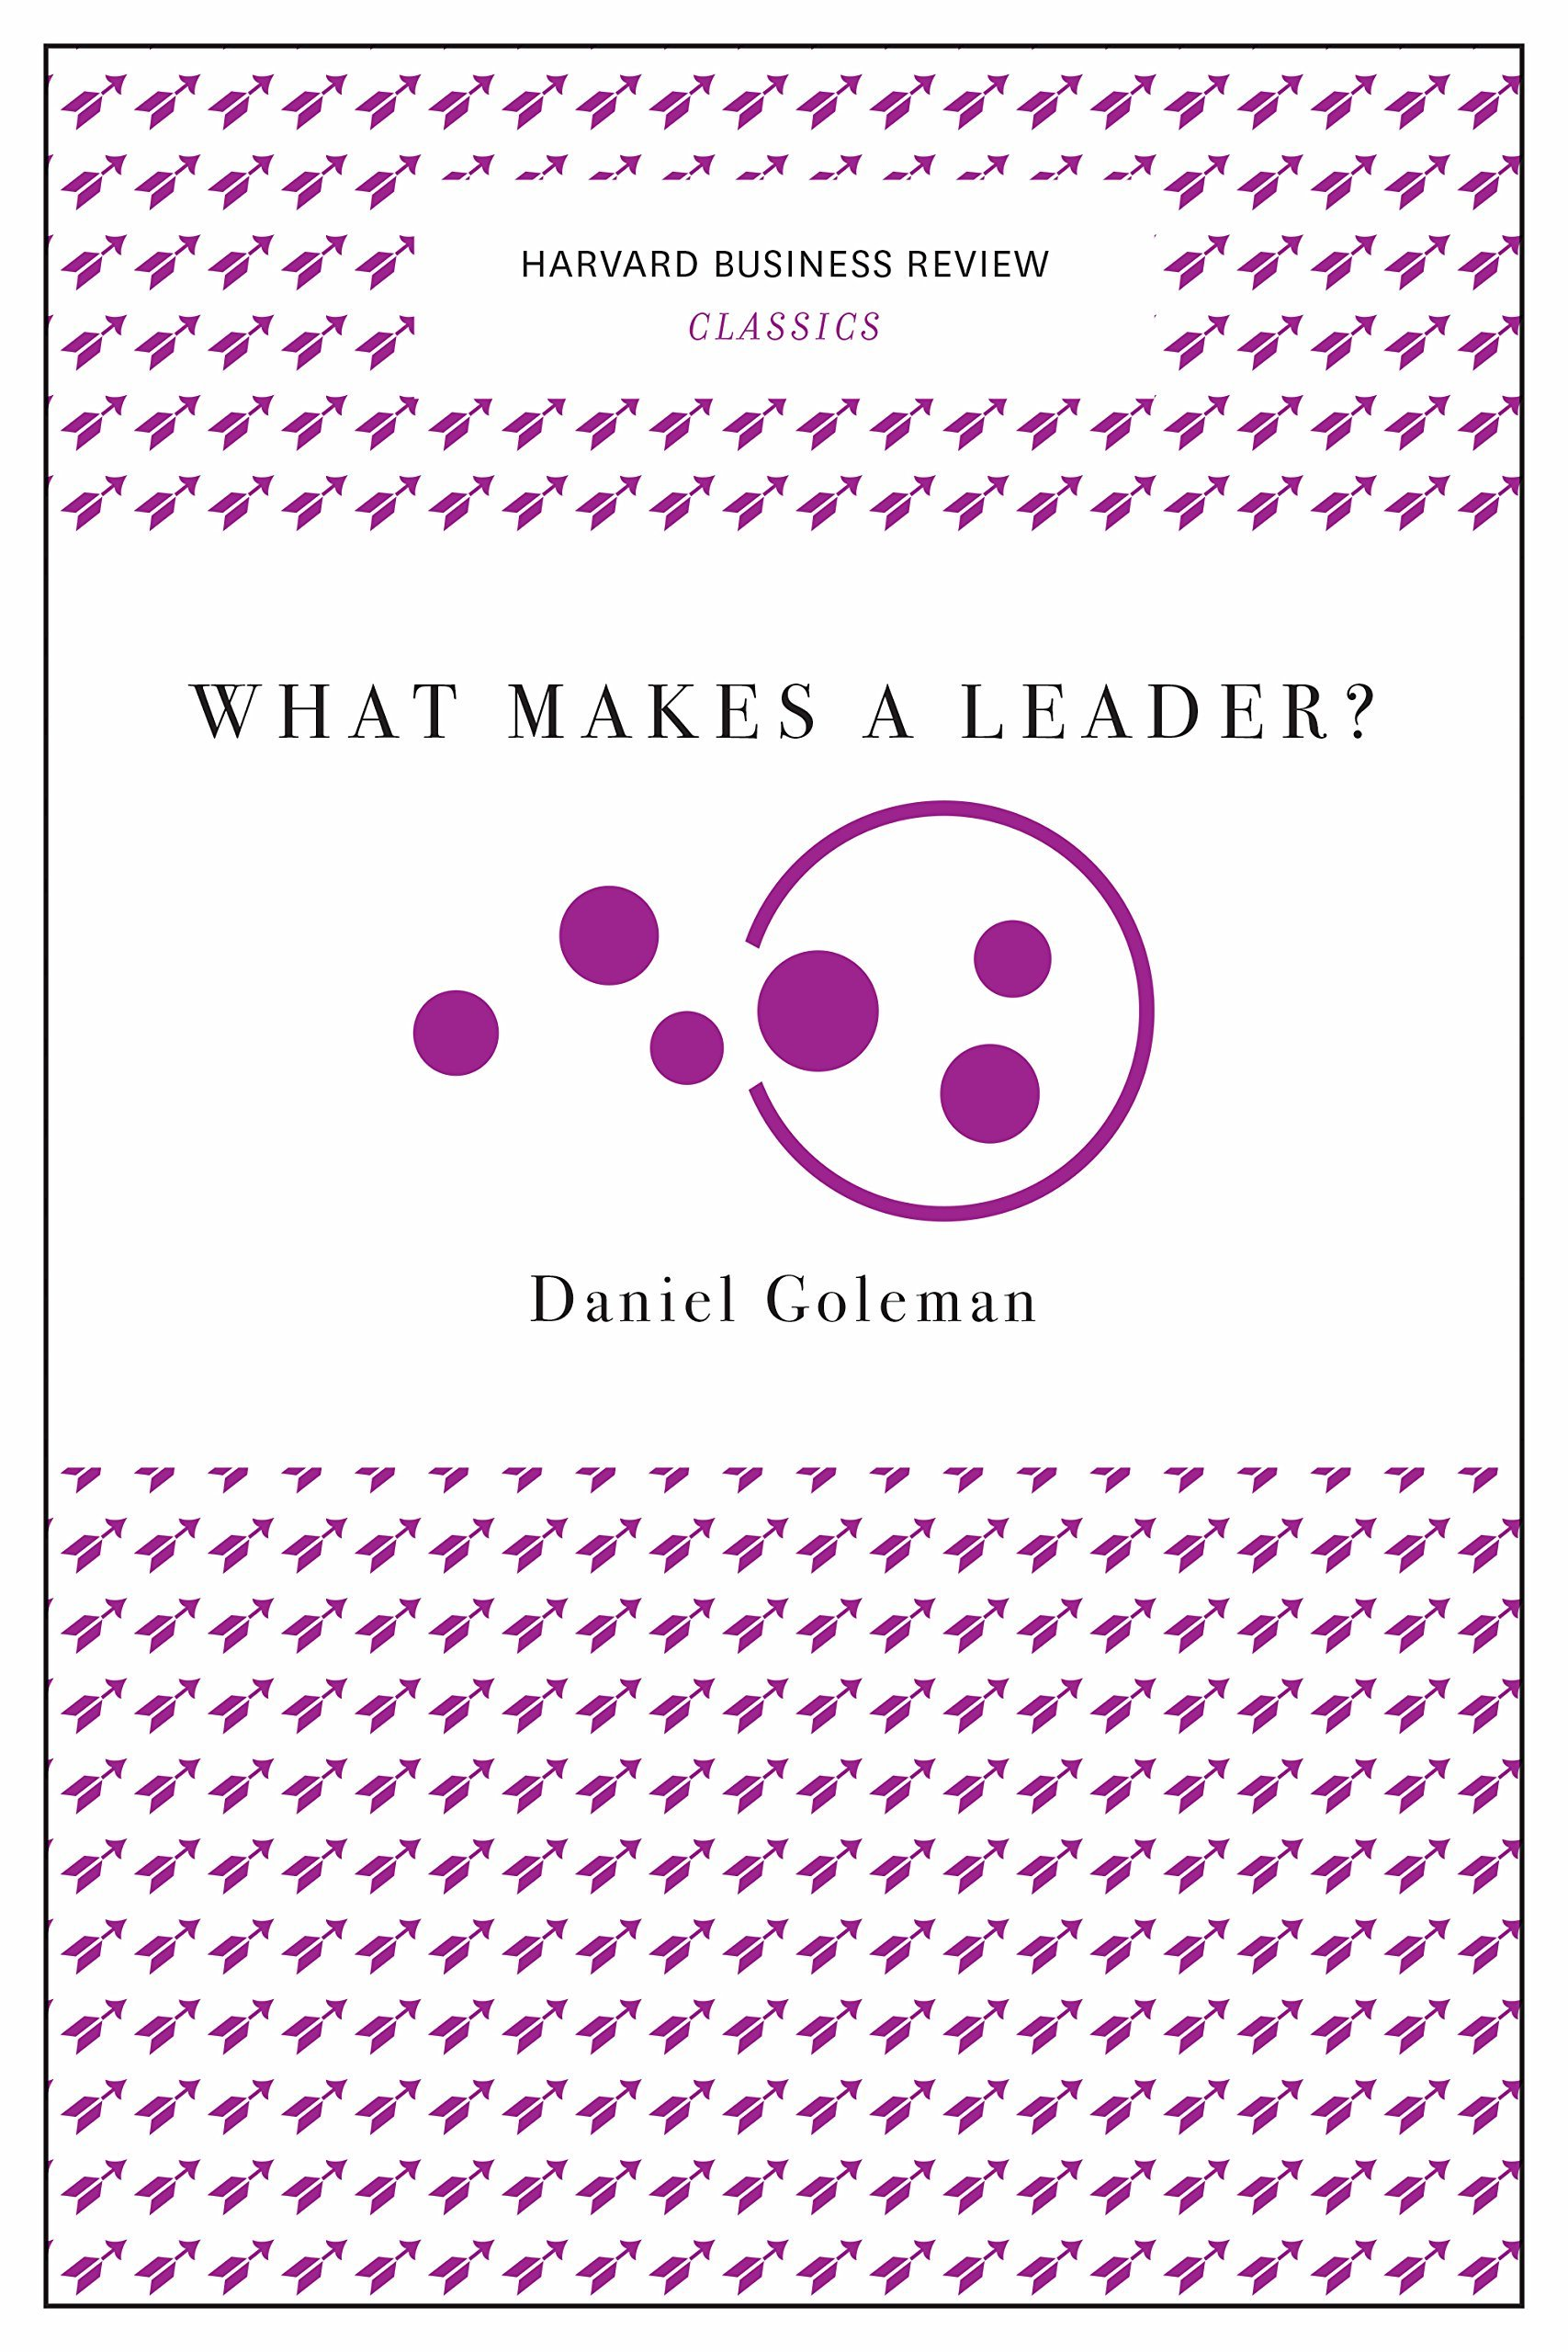 What Makes a Leader (Harvard Business Review Classics)